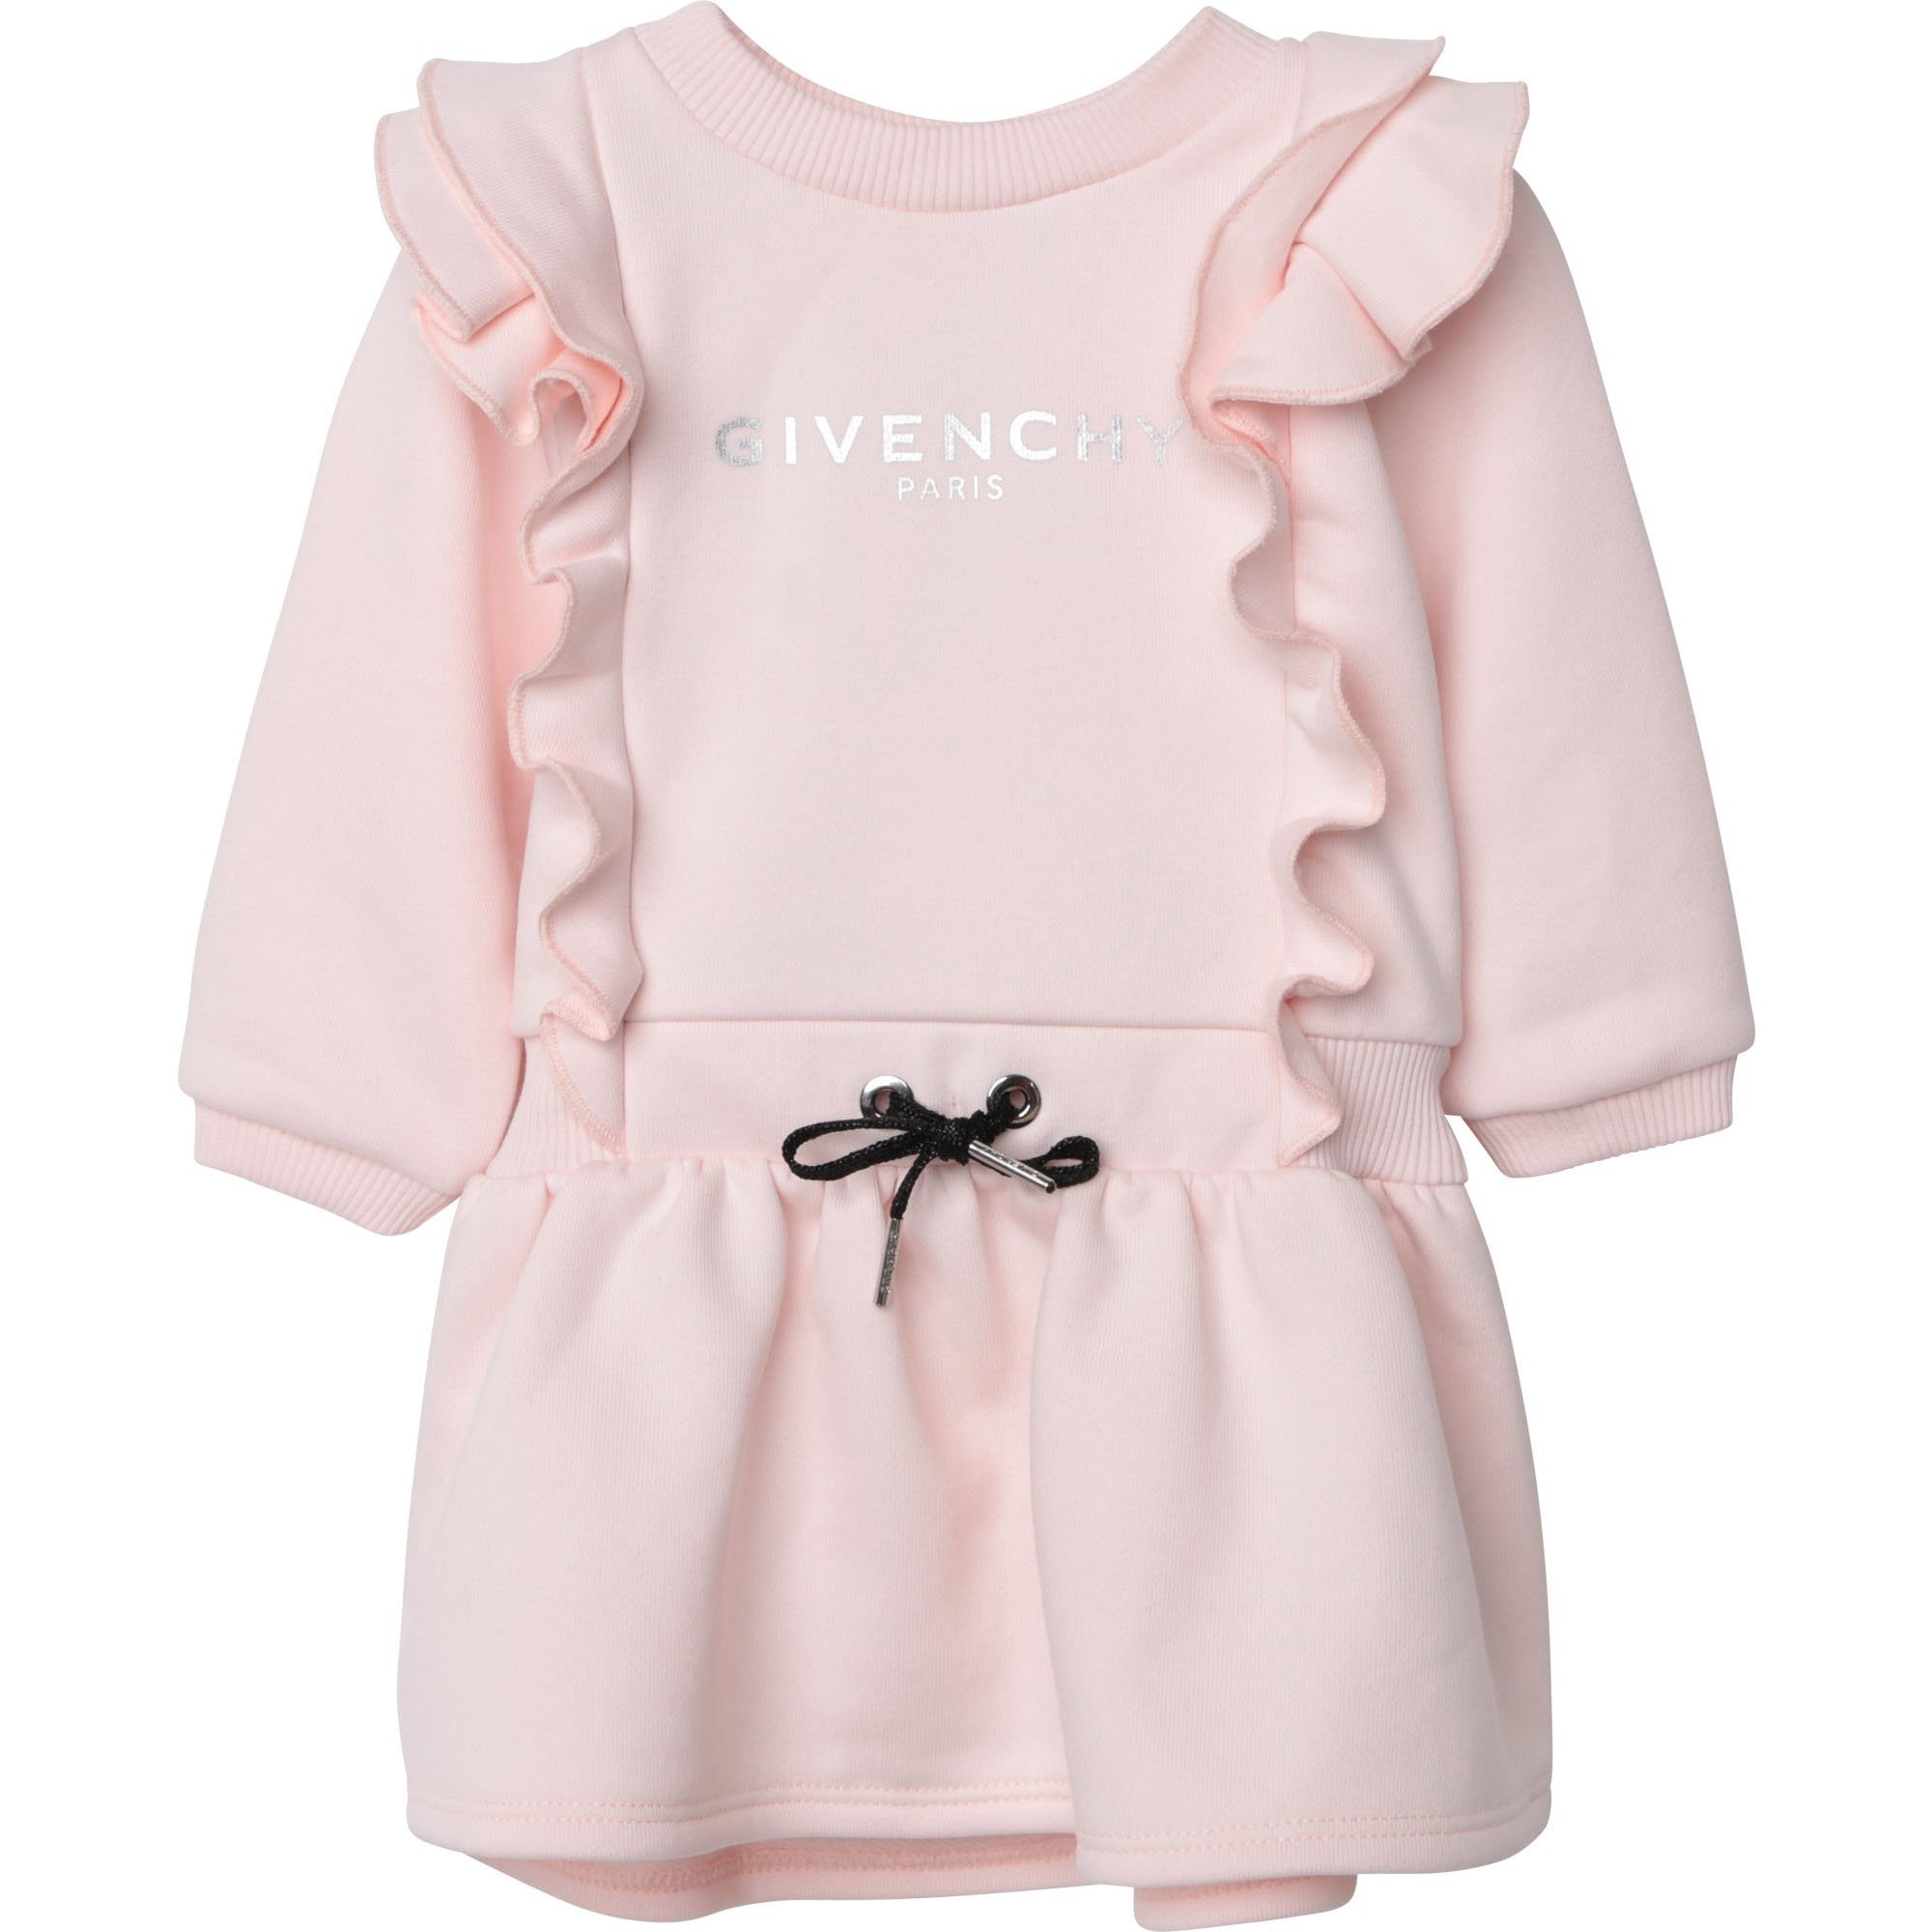 GIVENCHY - pink pale - 12m